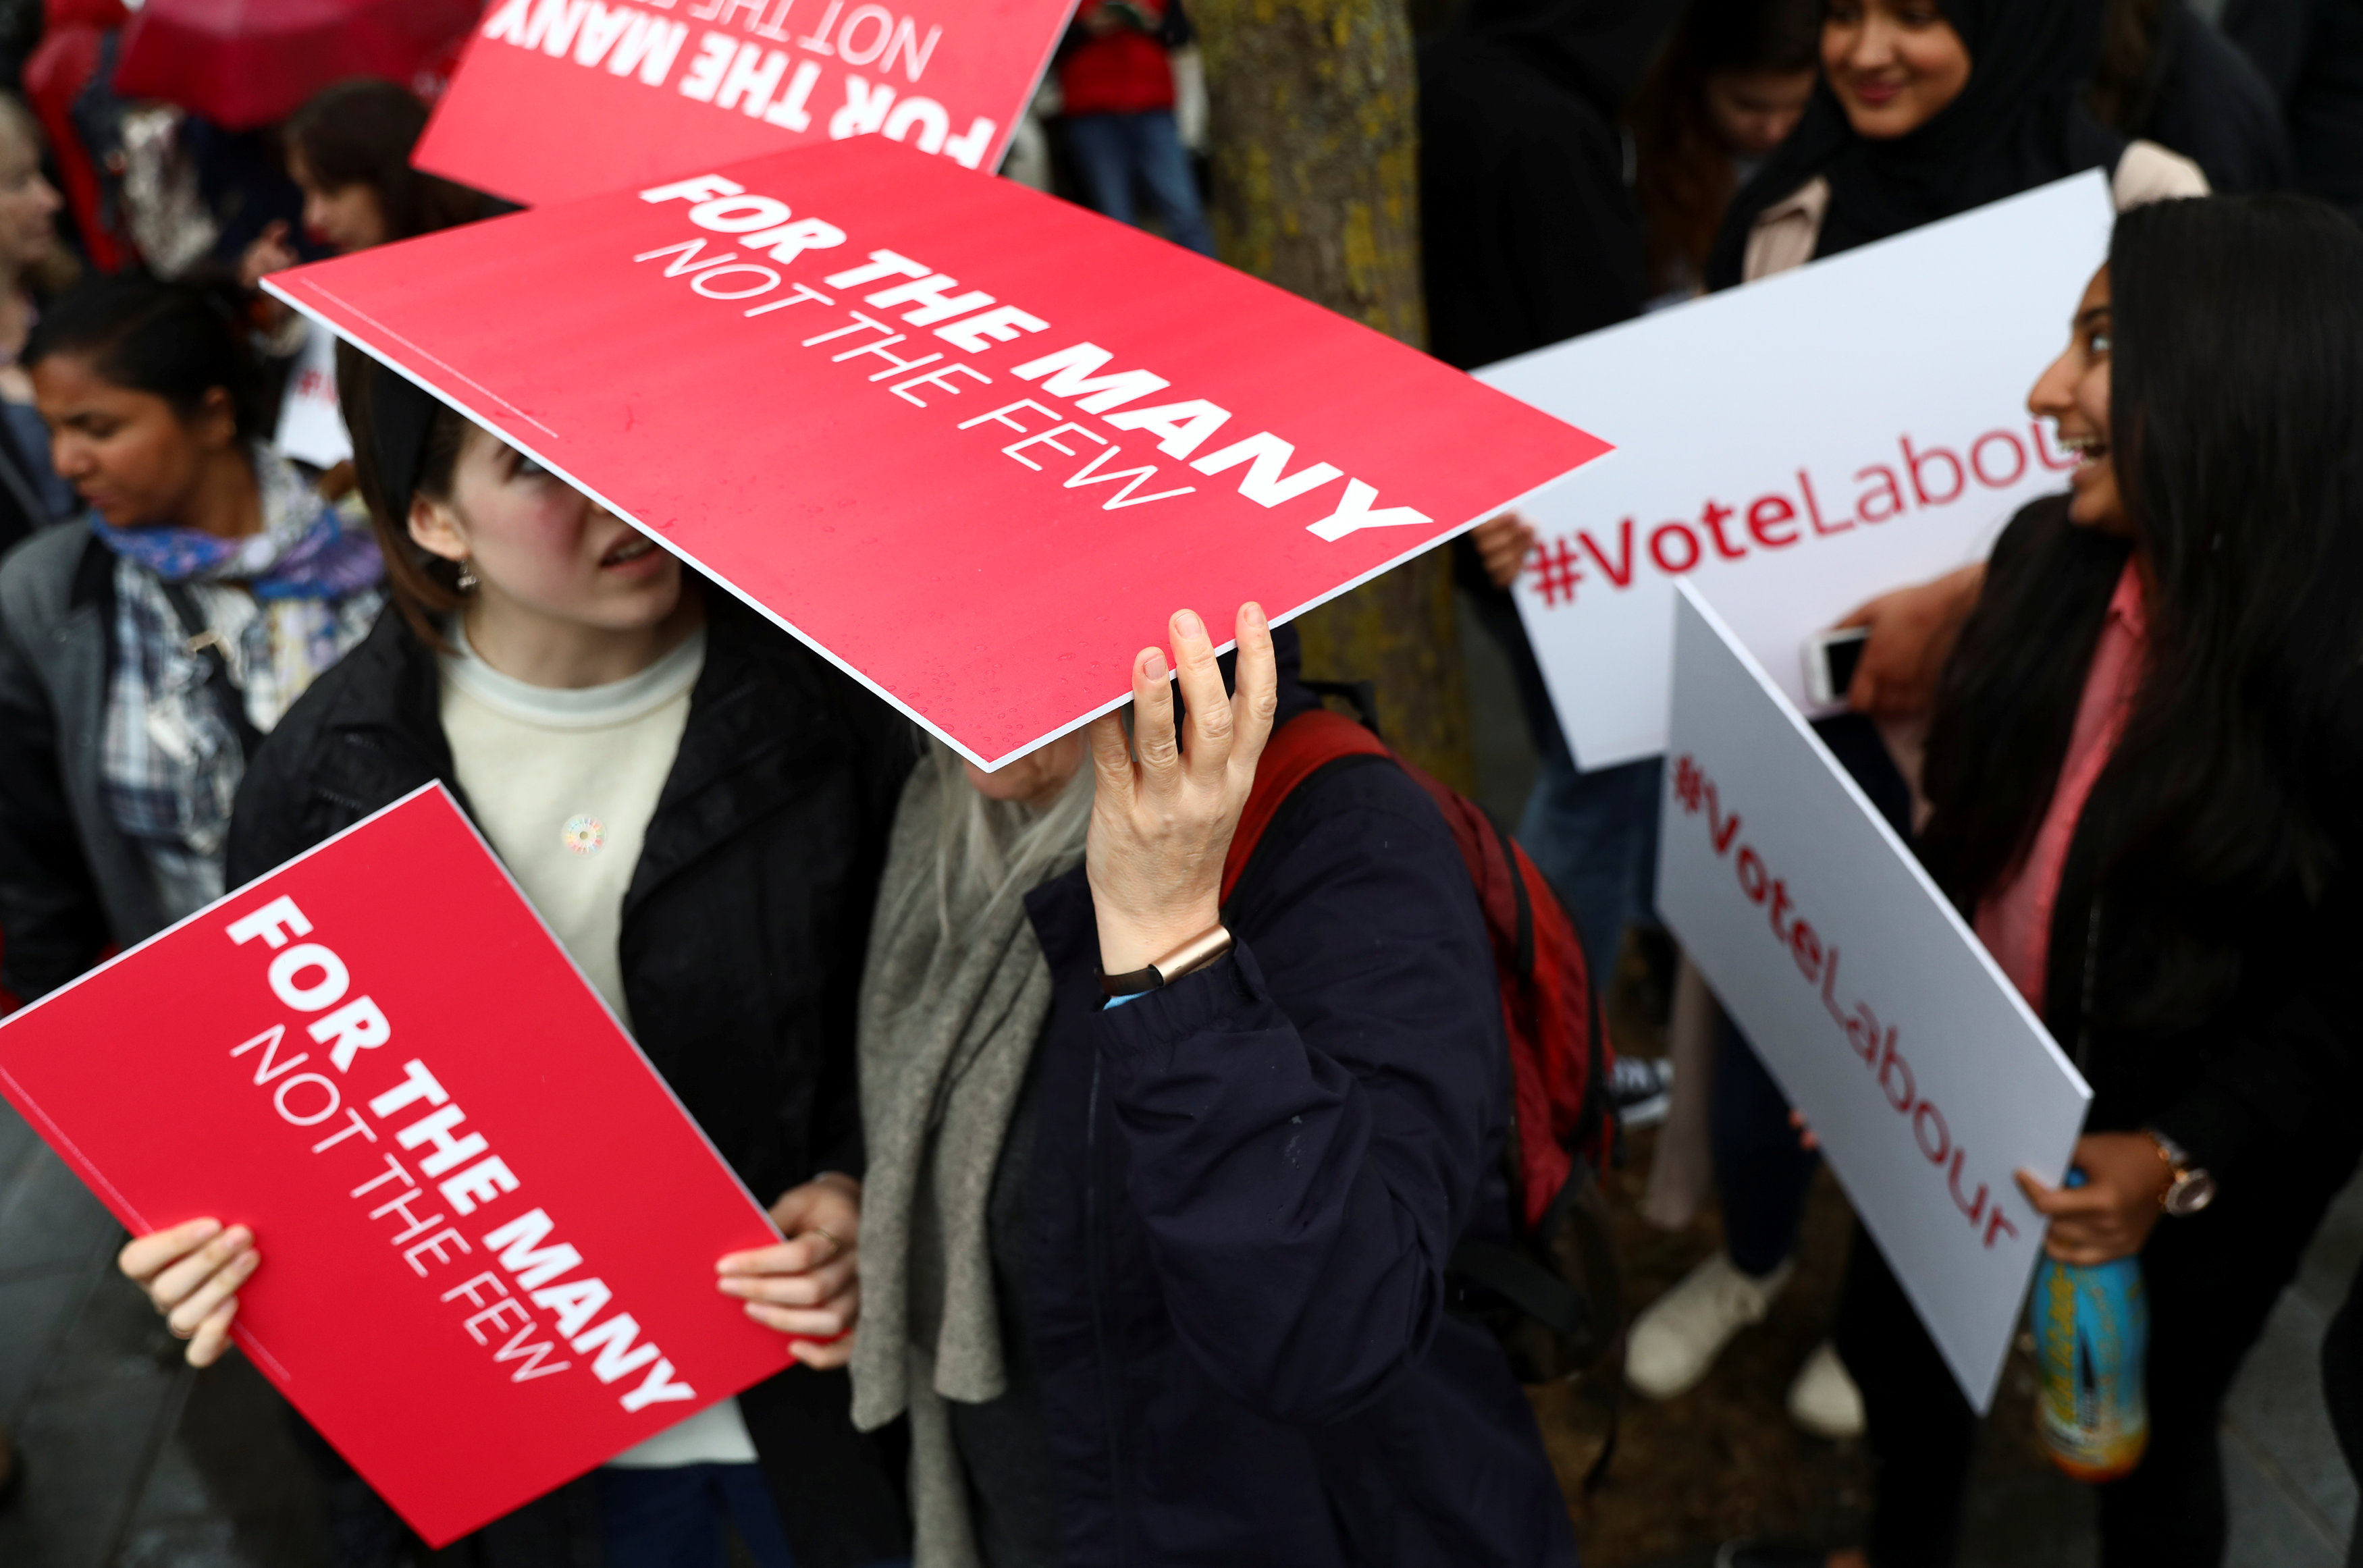 Supporters of Britain's opposition Labour party use placards to shelter from the rain as they campaign in London, Britain on May 18, 2017. (REUTERS/Neil Hall)